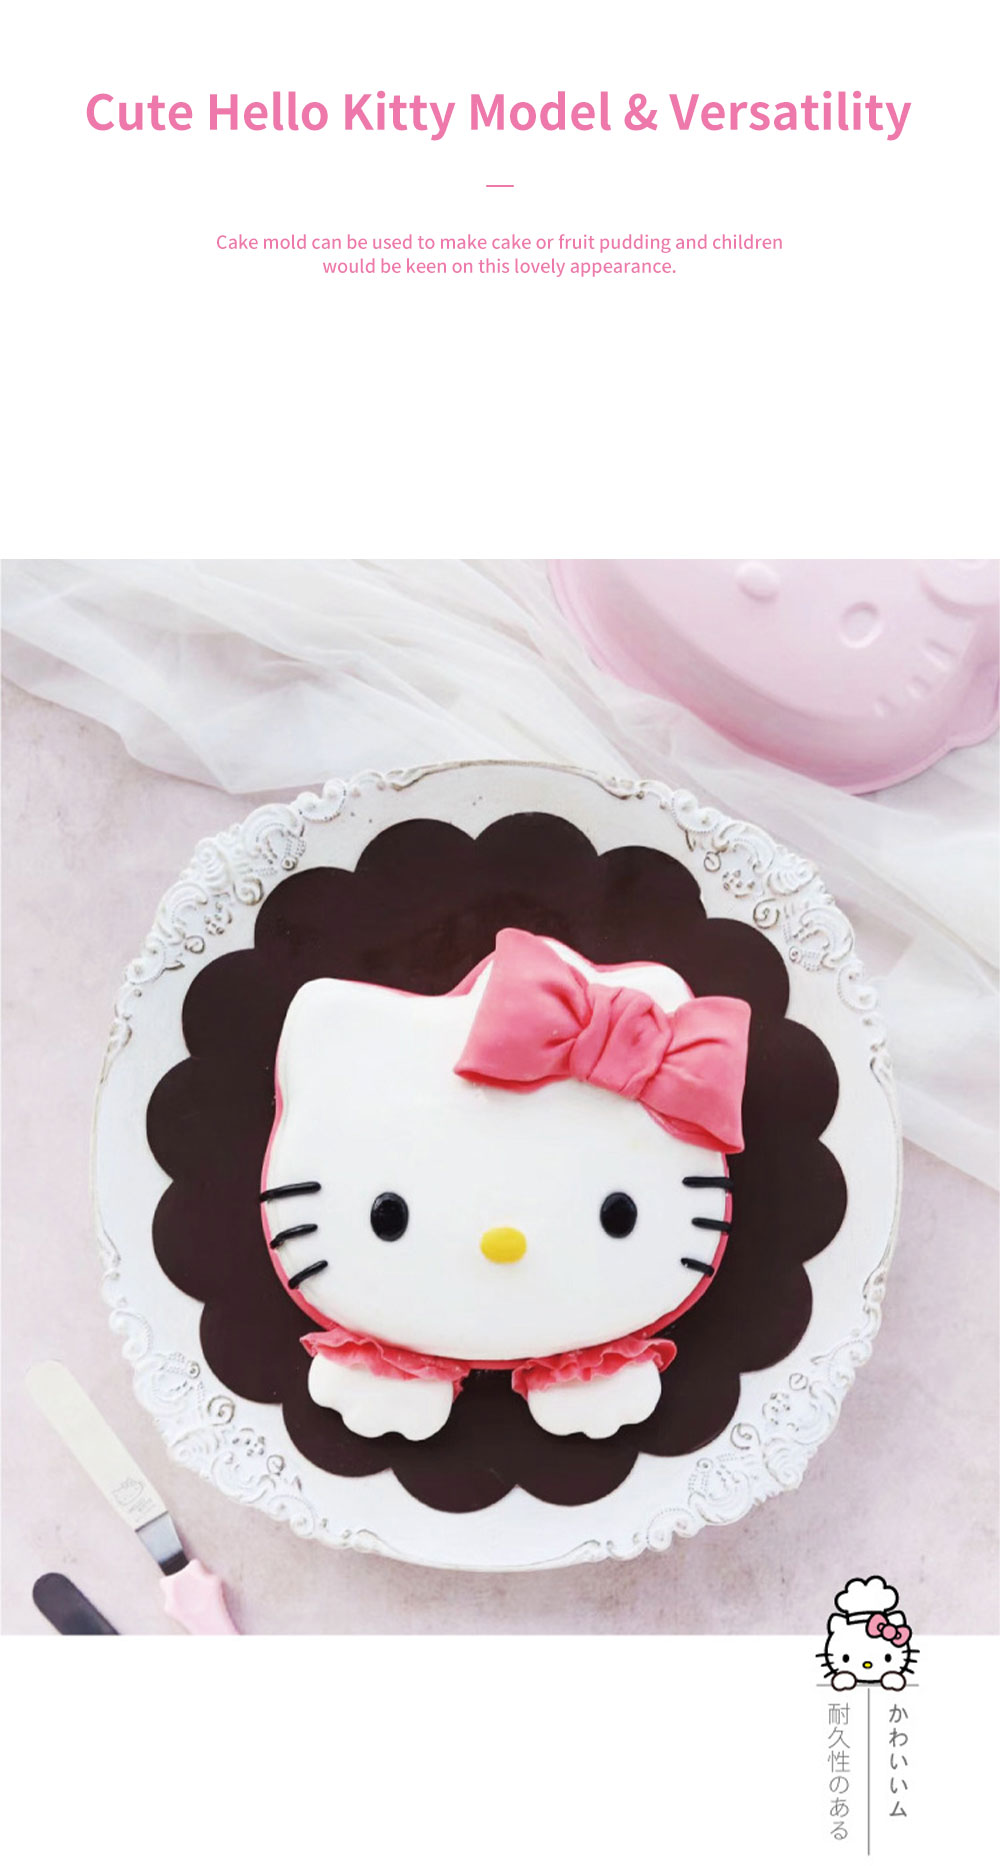 Cute Kitty Model Heat-resistance Carbon Steel 8-inch Cake Jelly Mold Kitchen Baking Assistant Stool 3